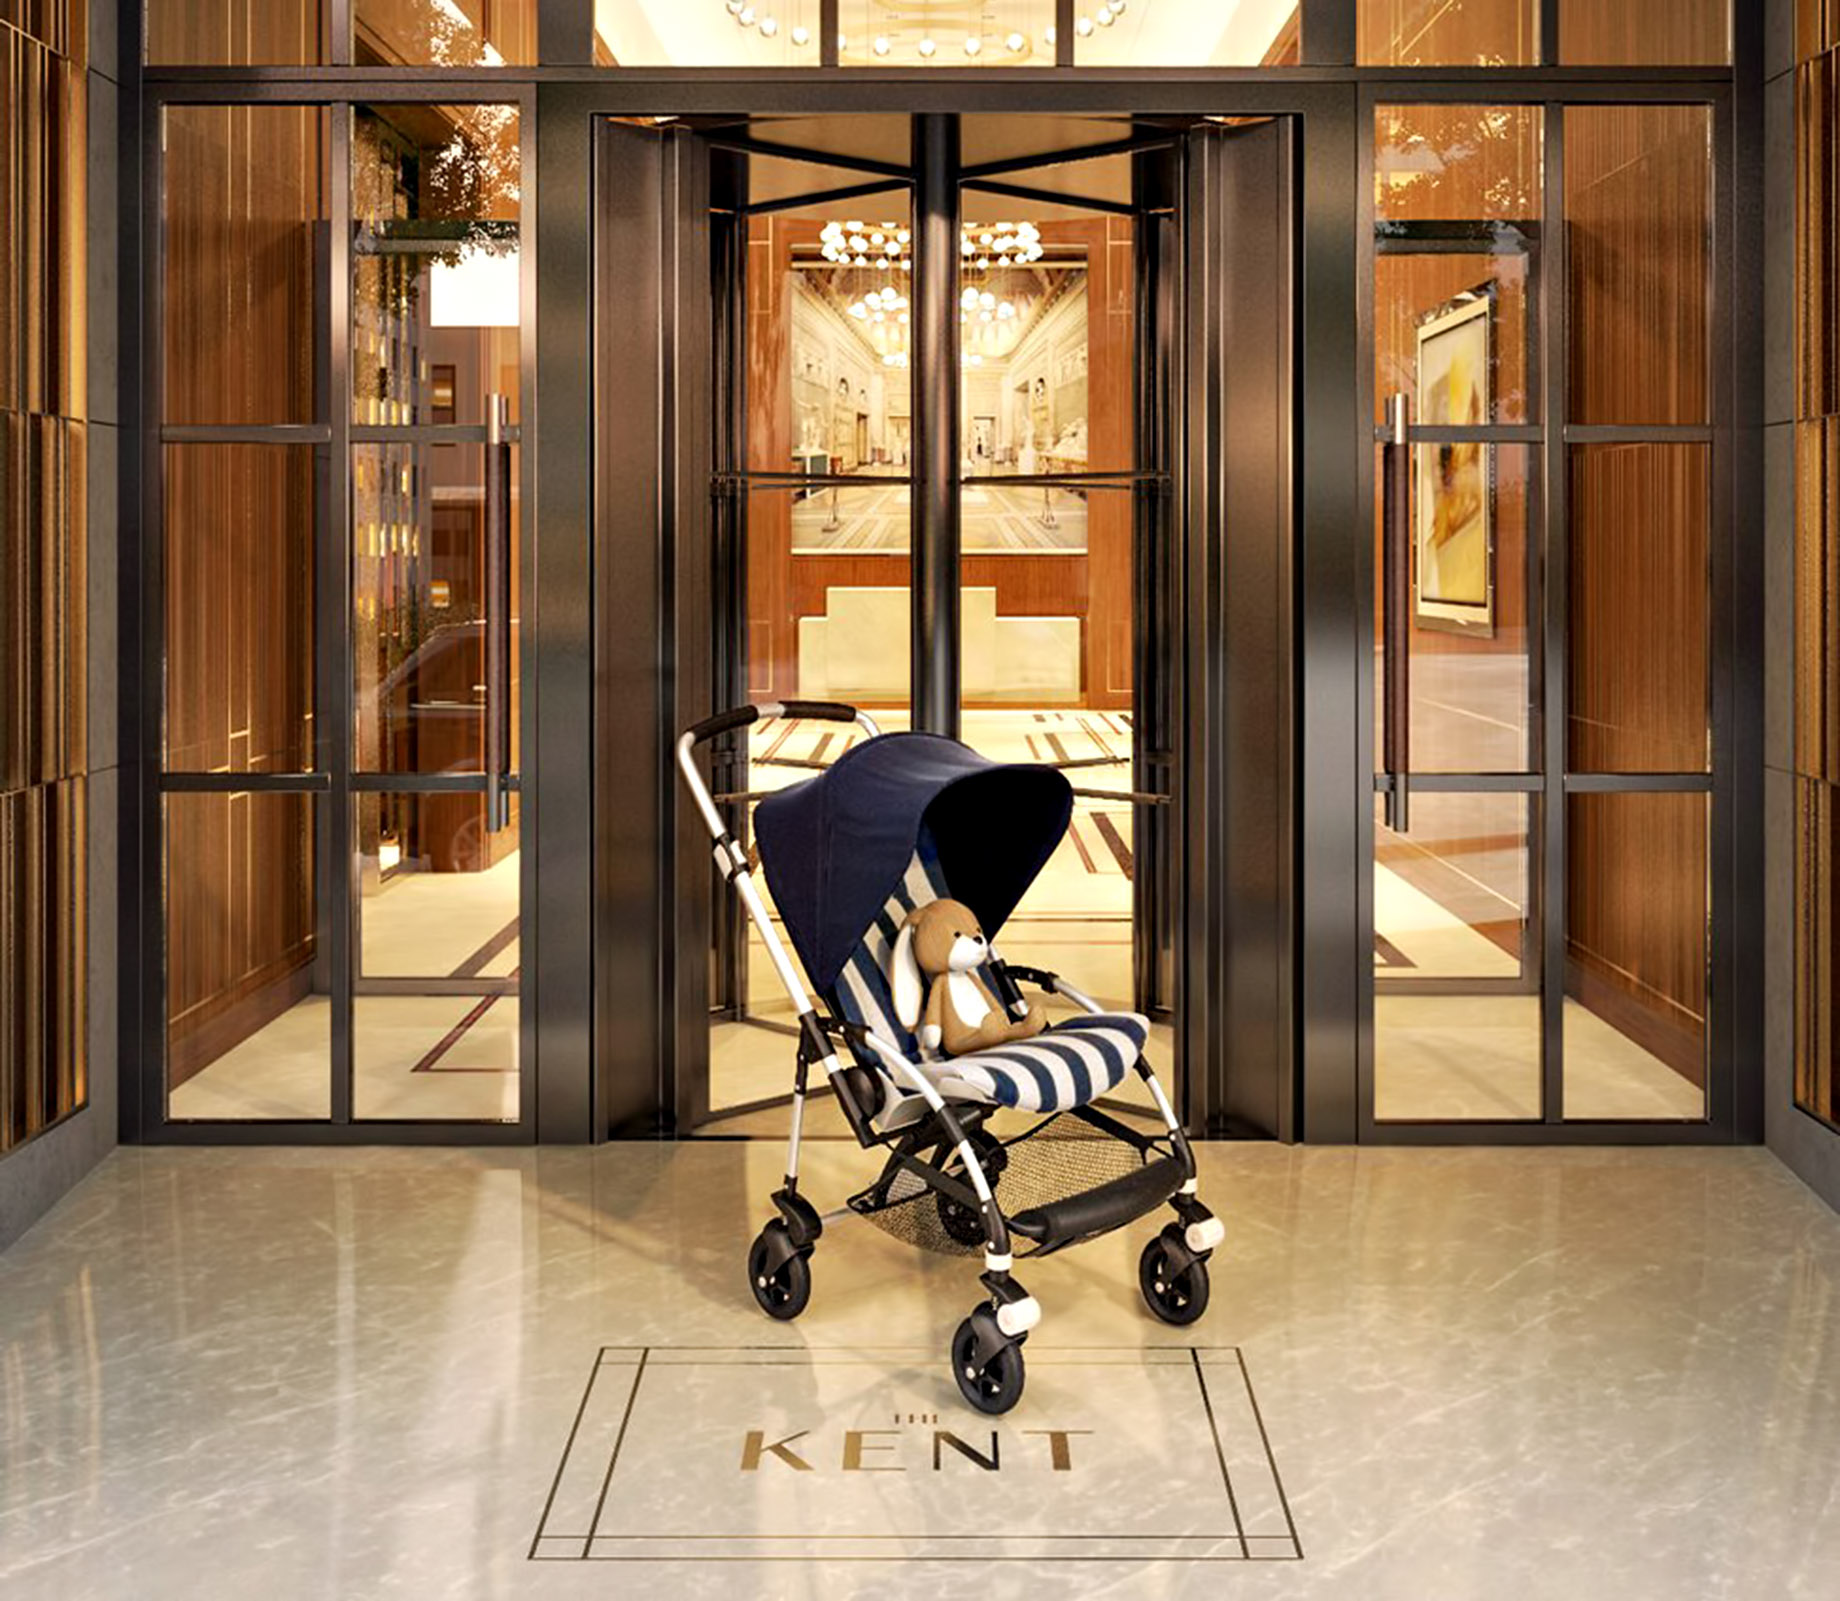 The Kent NYC - Stroller Valet